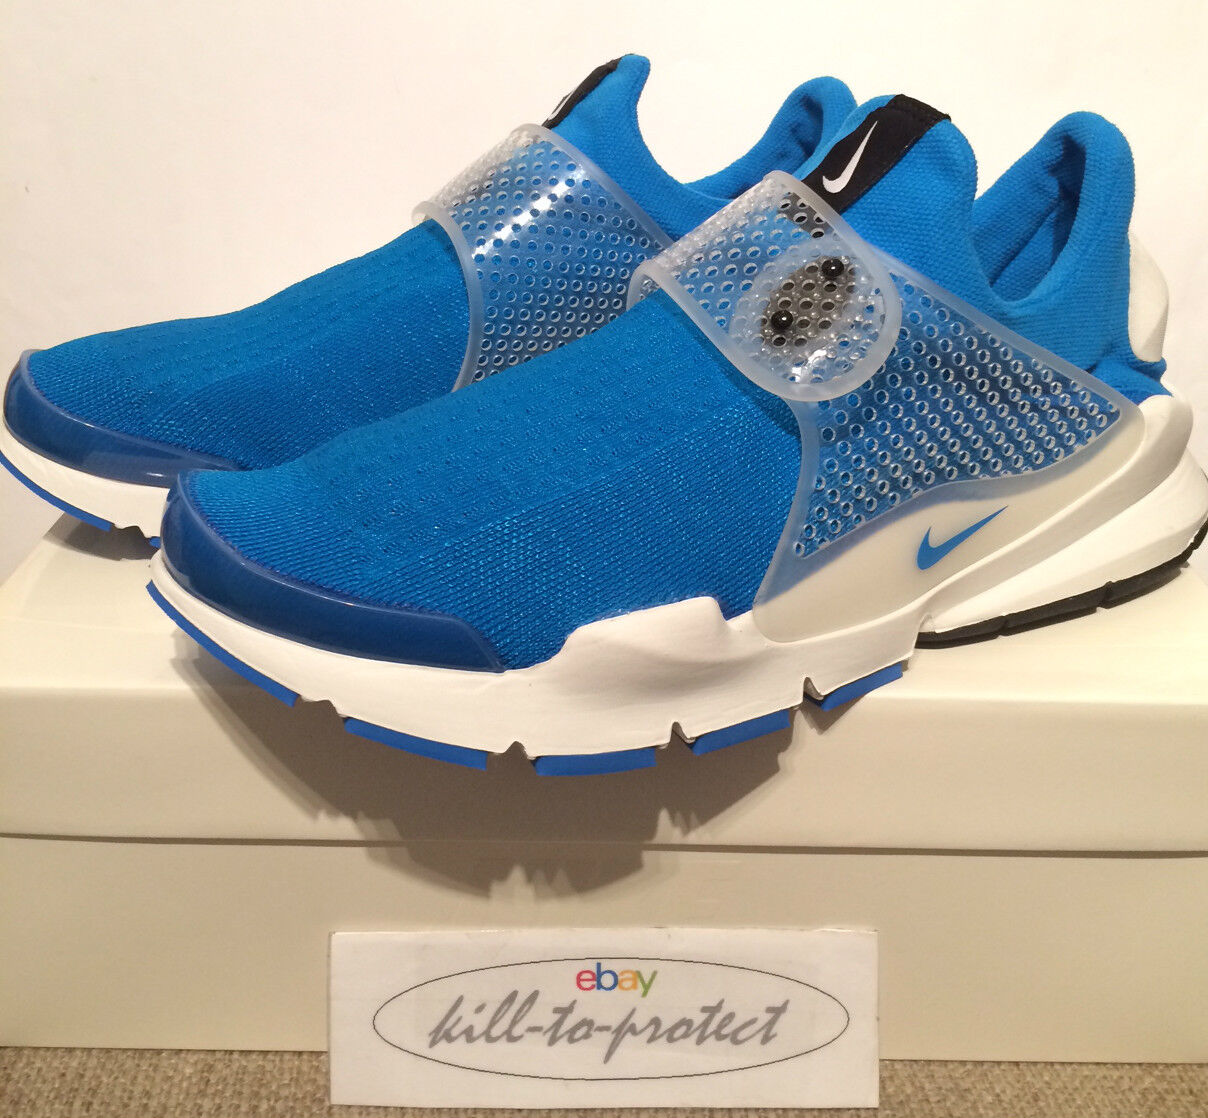 FRAGMENT x NIKE SOCK DART PHOTO blueE Sz UK US 8 9 10 11 SP 728748-401 HTM 2014